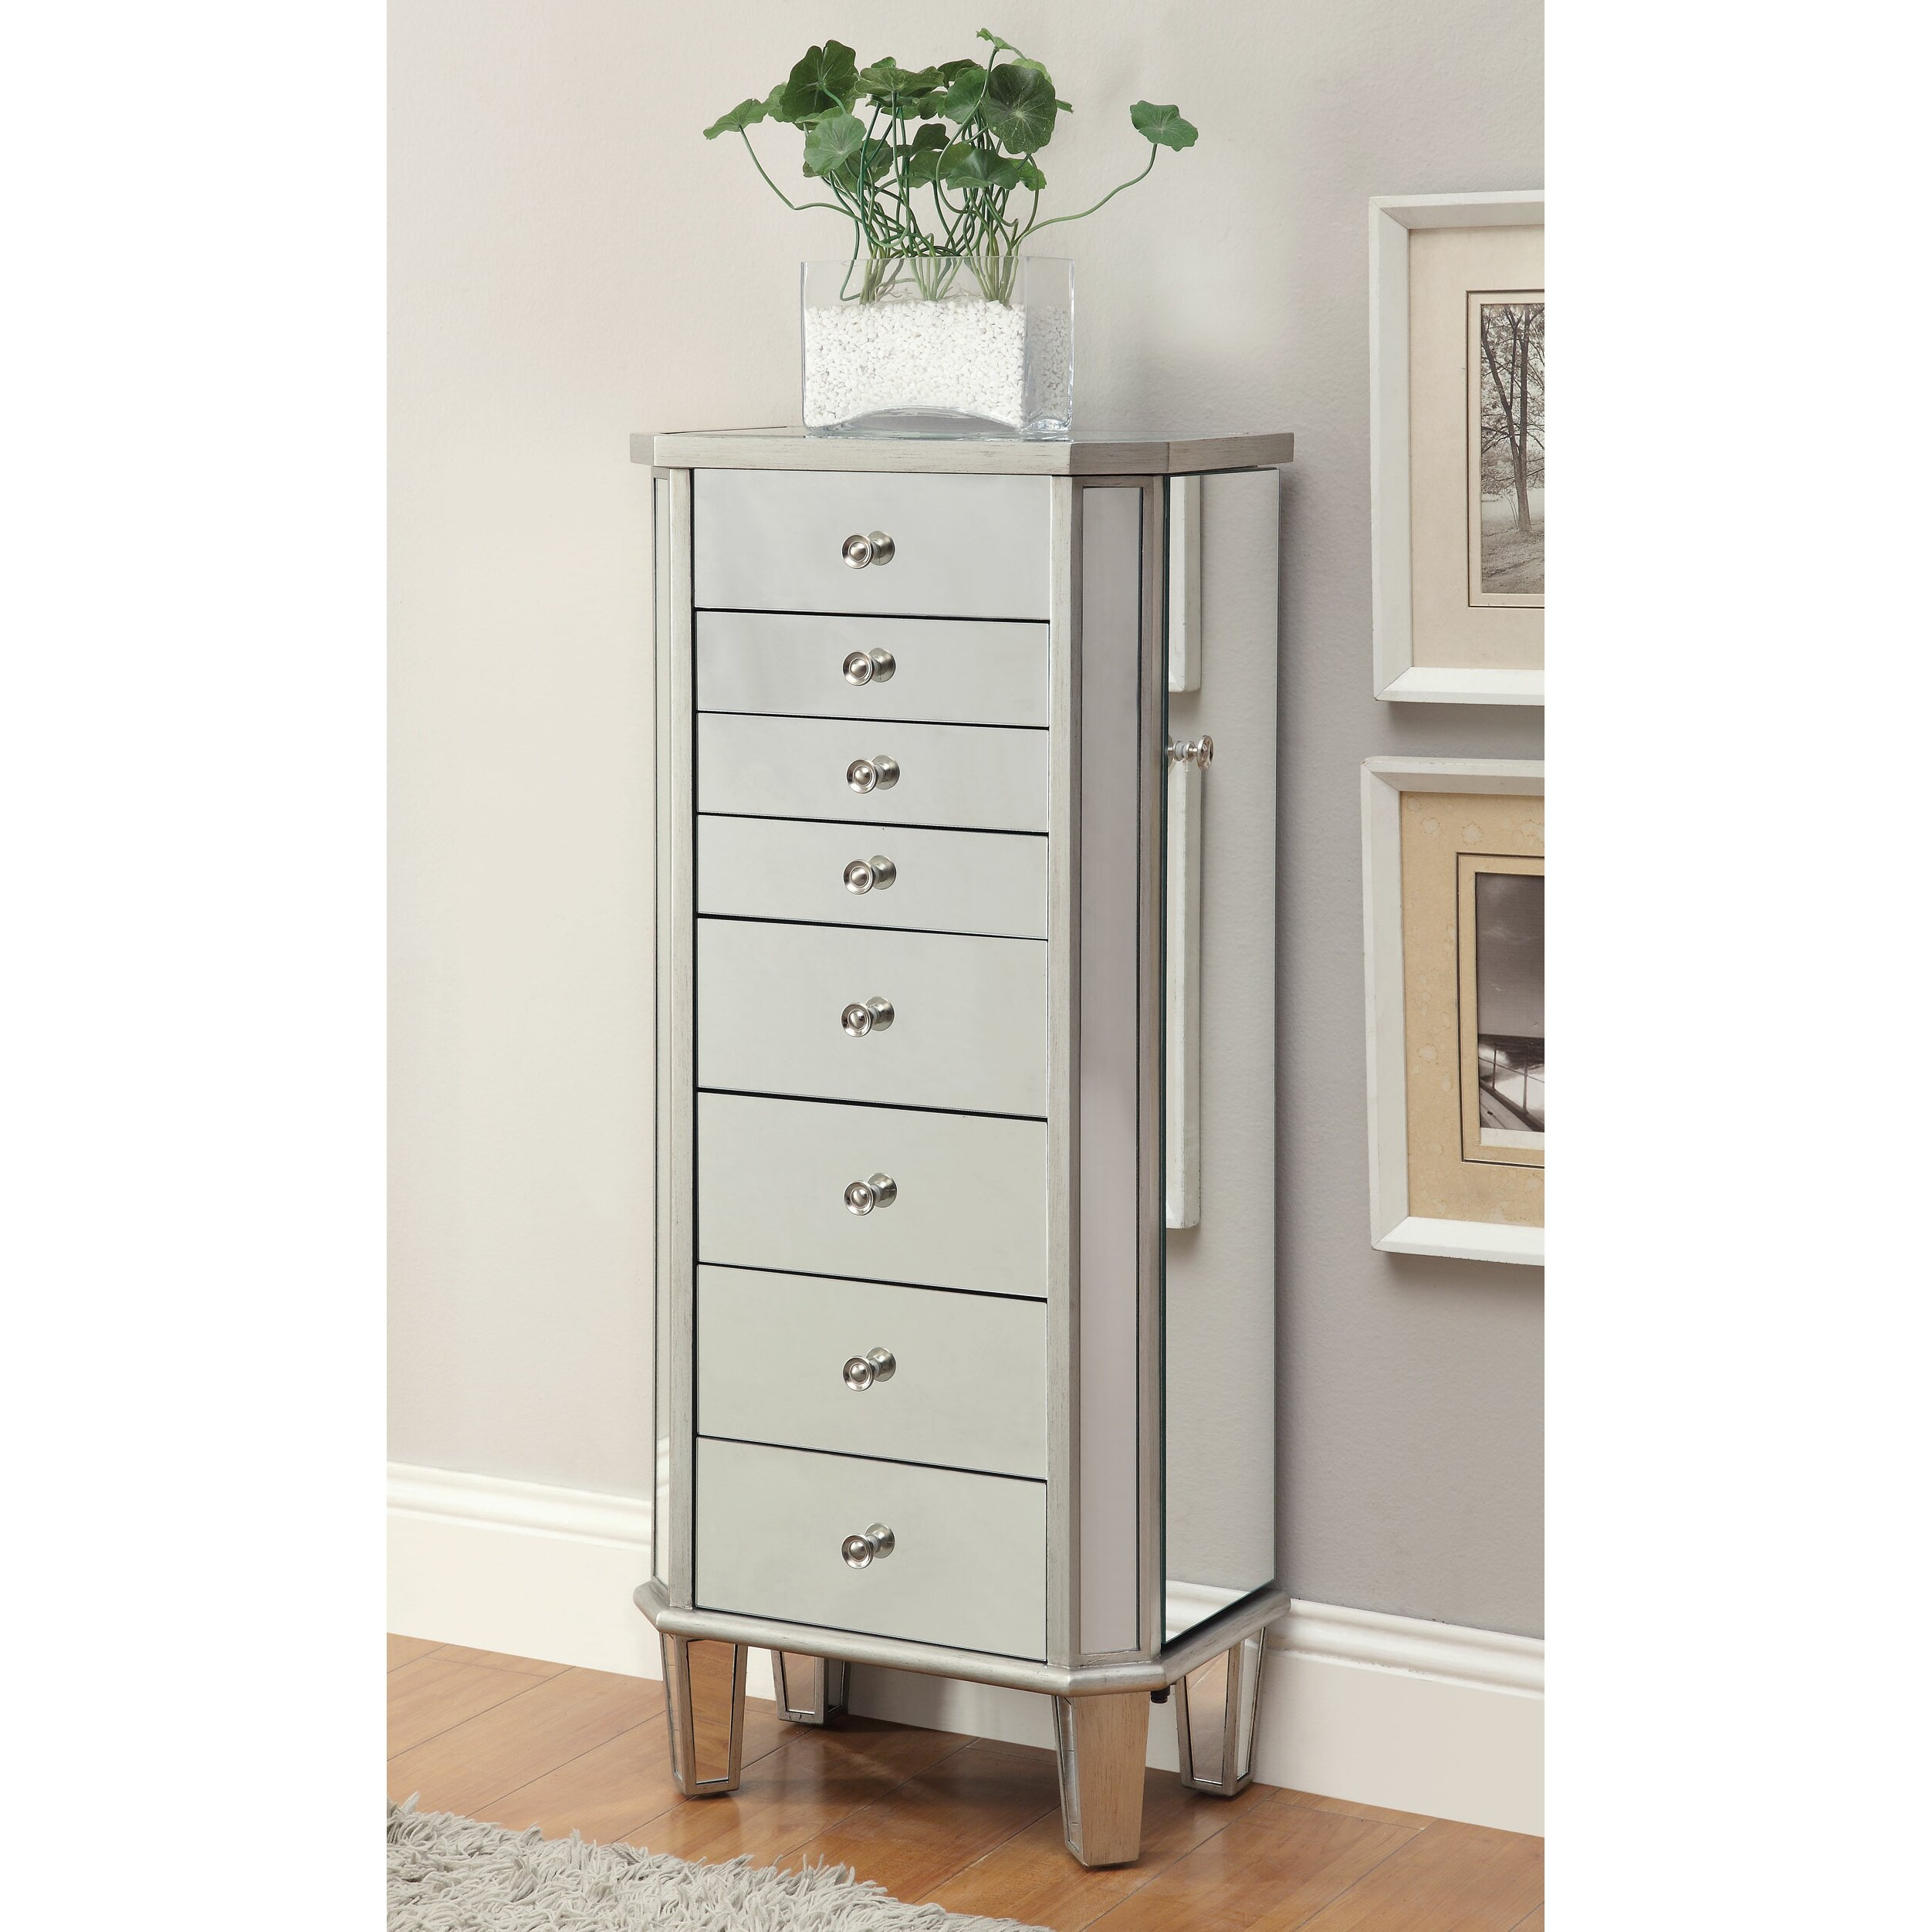 House of hampton rothwell jewelry armoire with flip top for Mirror jewelry cabinet